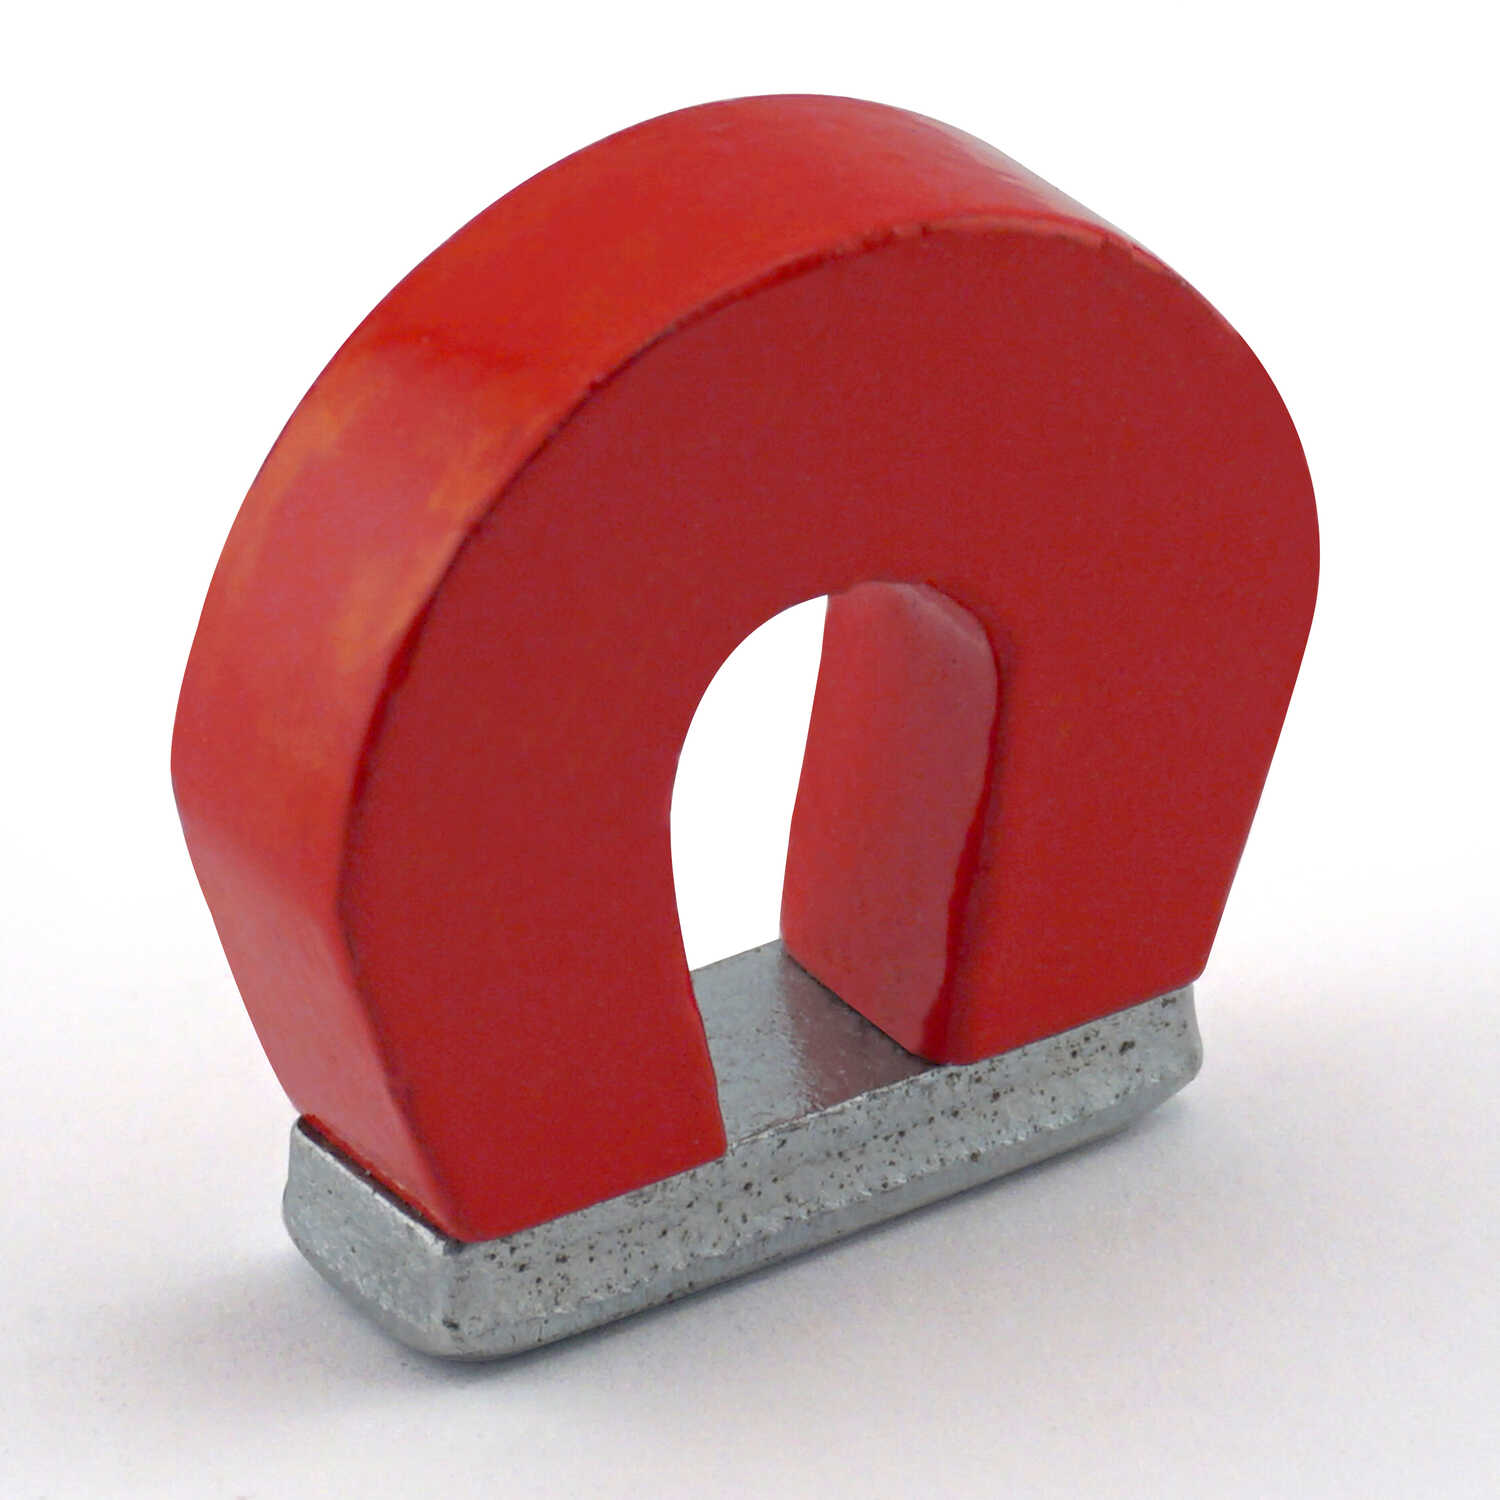 Master Magnetics  1 in. Alnico  2 lb. pull 5.5 MGOe Red  1 pc. Horseshoe Magnet